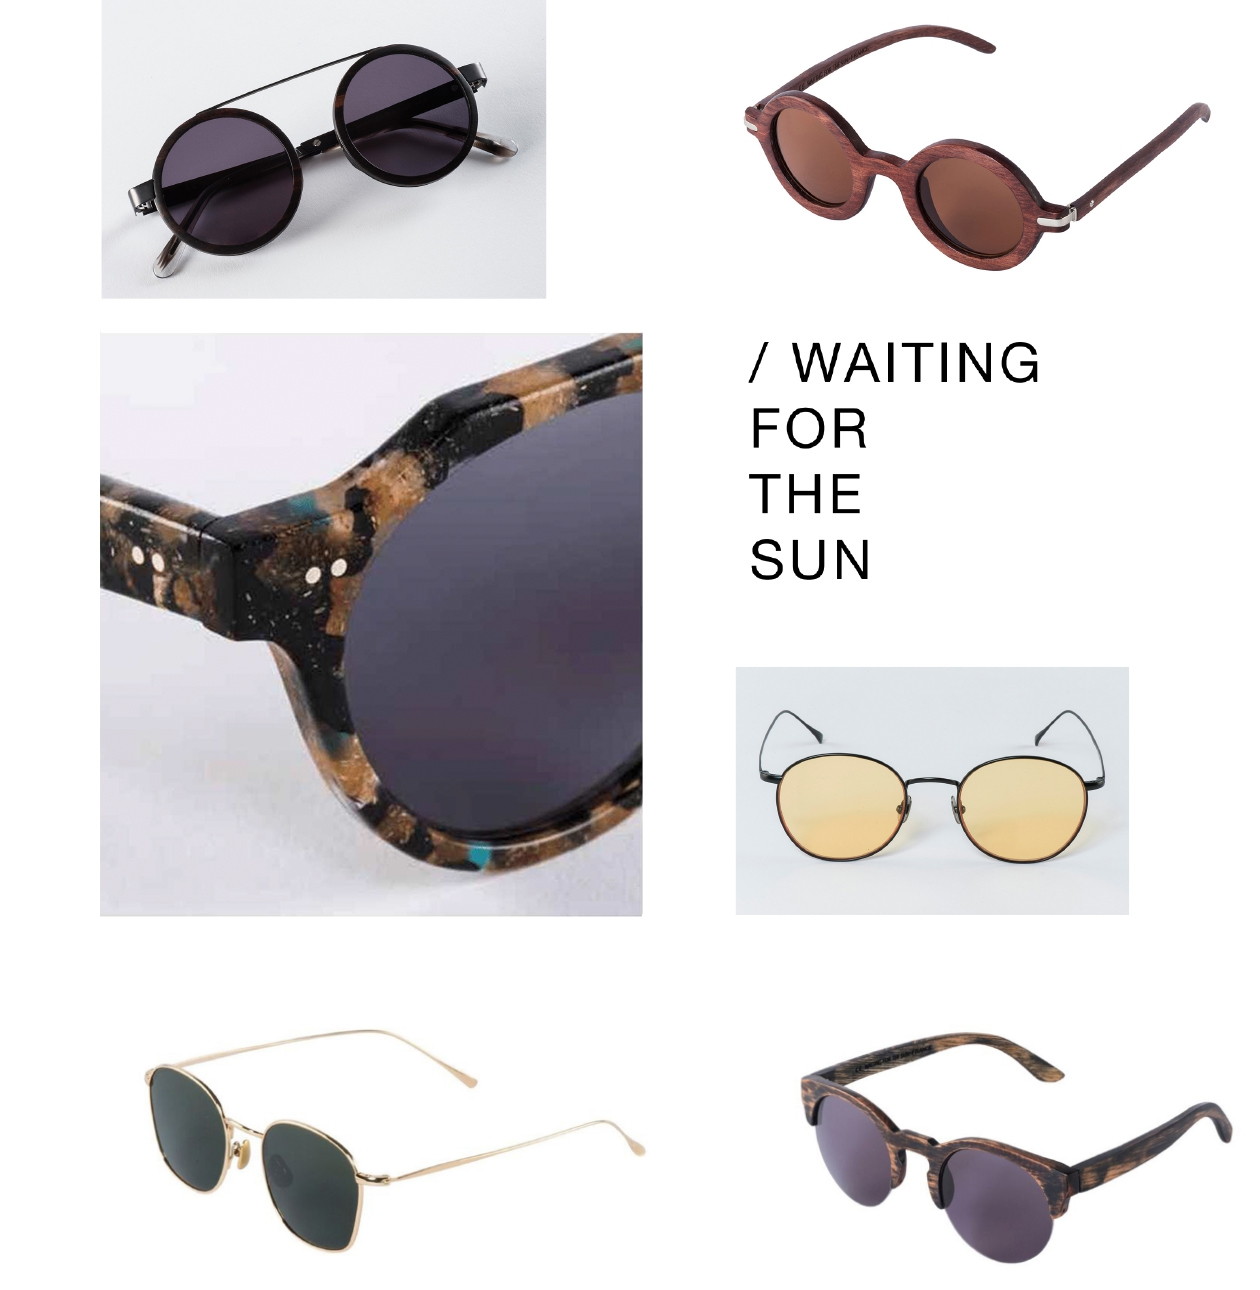 NEW at AVESU | Sunglasses by WAITING FOR THE SUN | Shop now!